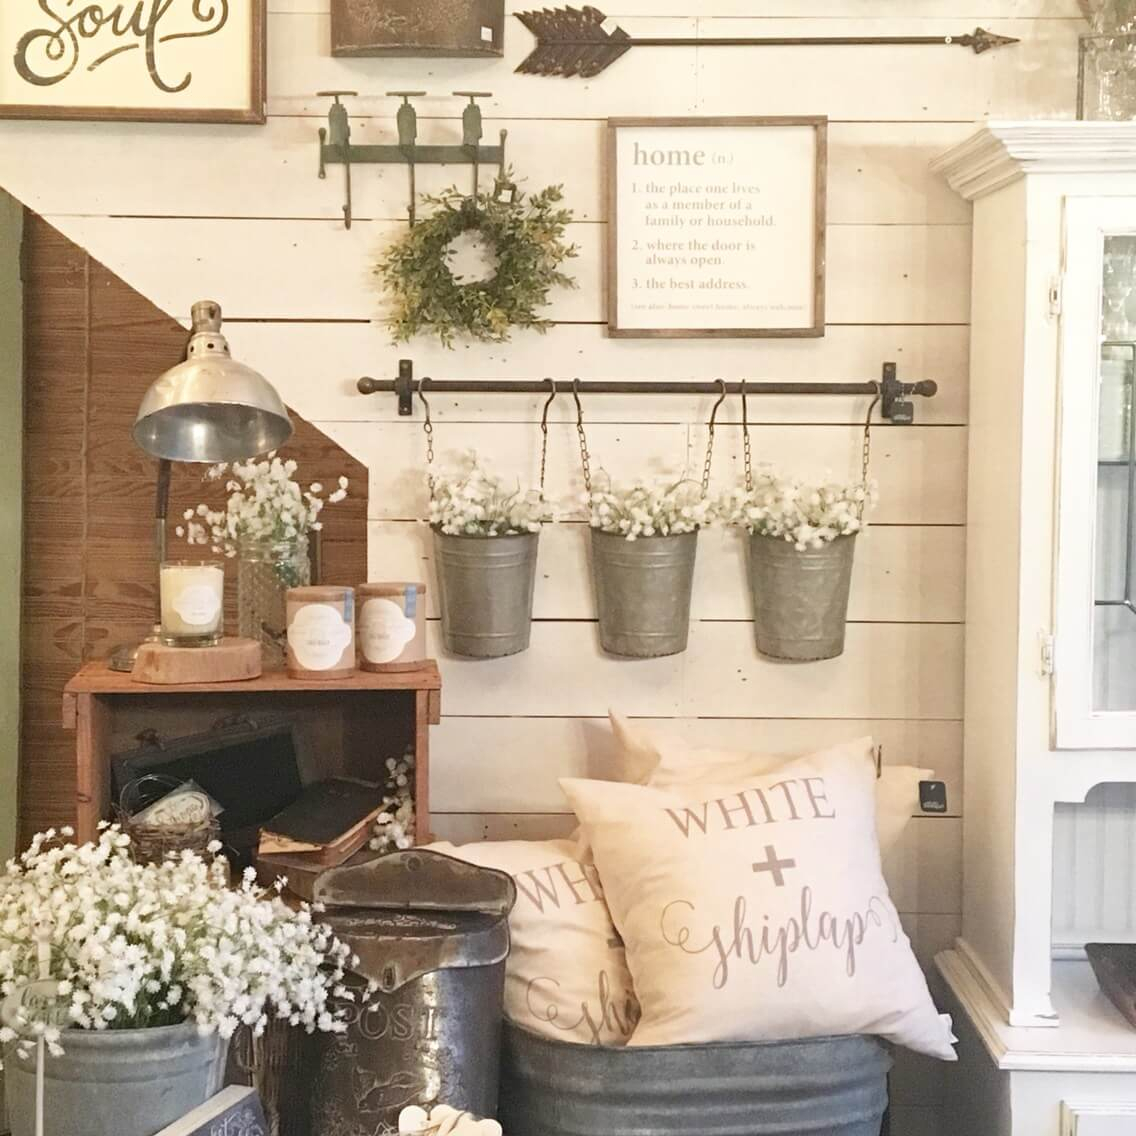 45+ Best Farmhouse Wall Decor Ideas And Designs For 2019 For Farm Metal Wall Rack And 3 Tin Pot With Hanger Wall Decor (View 9 of 30)